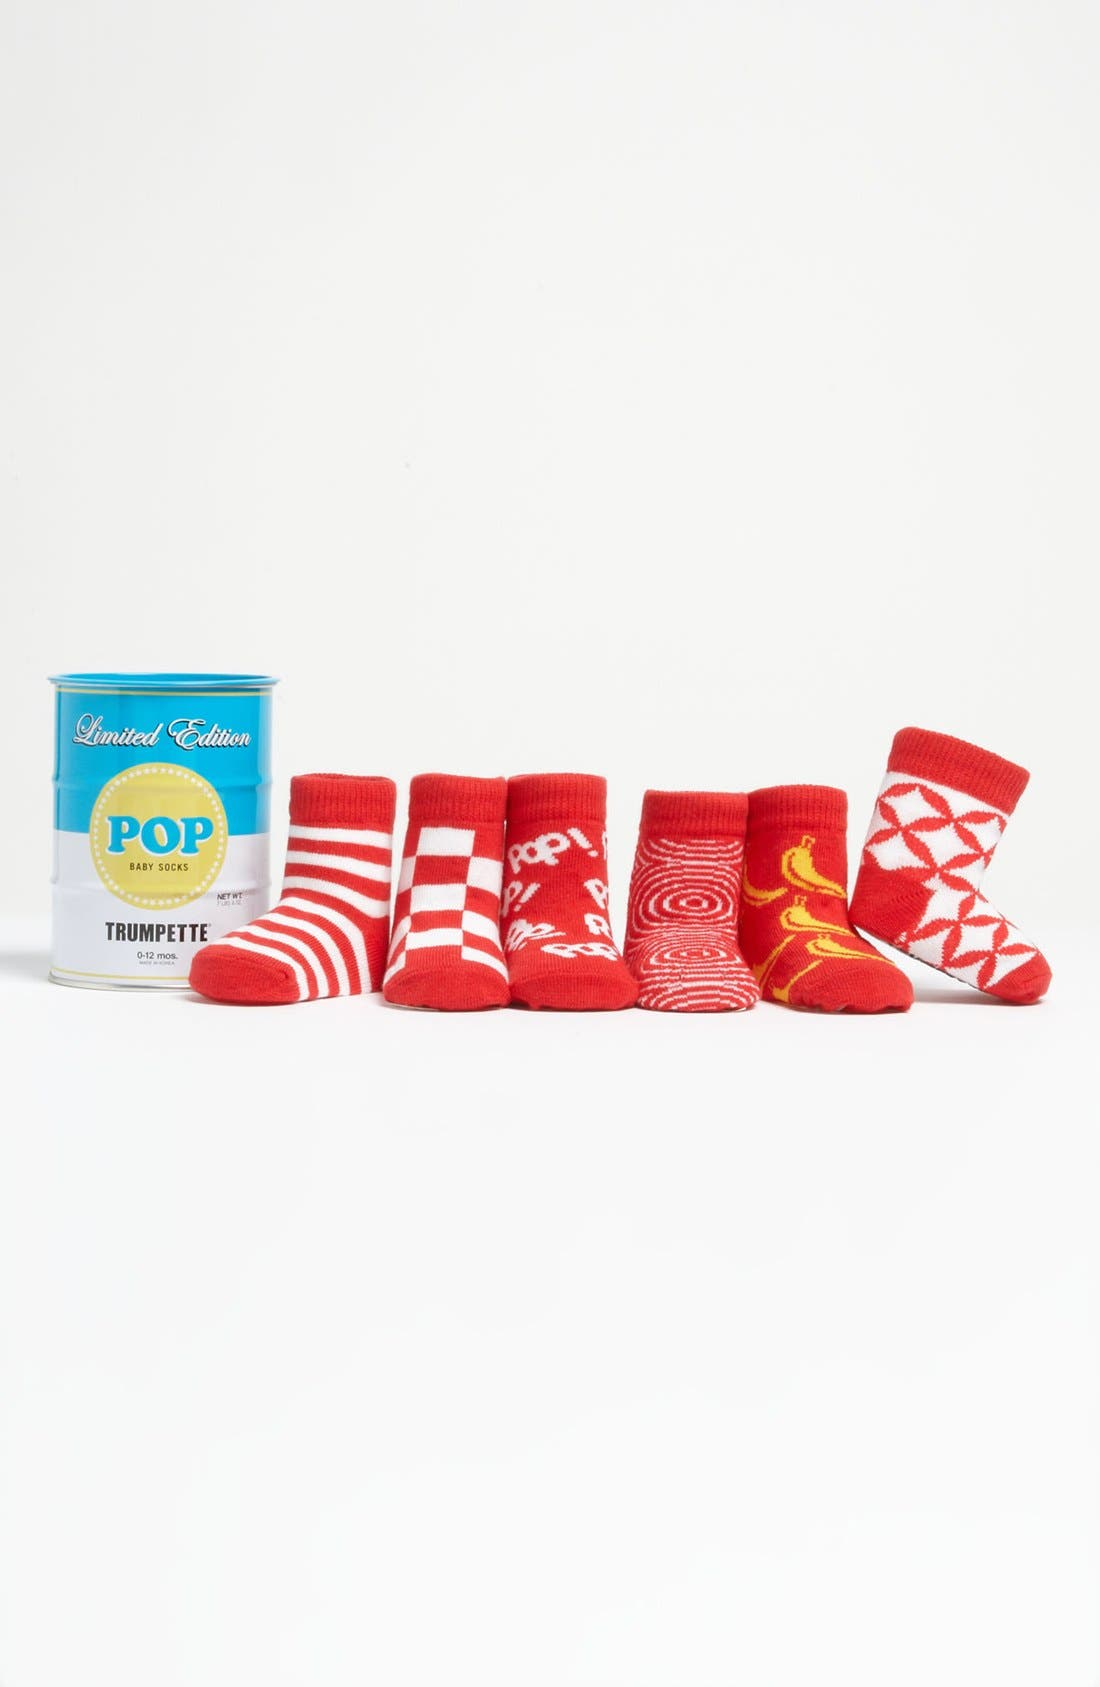 Main Image - Trumpette 'Pop Socks in a Tin Can' Sock Set (6-Pack)(Baby Boys)